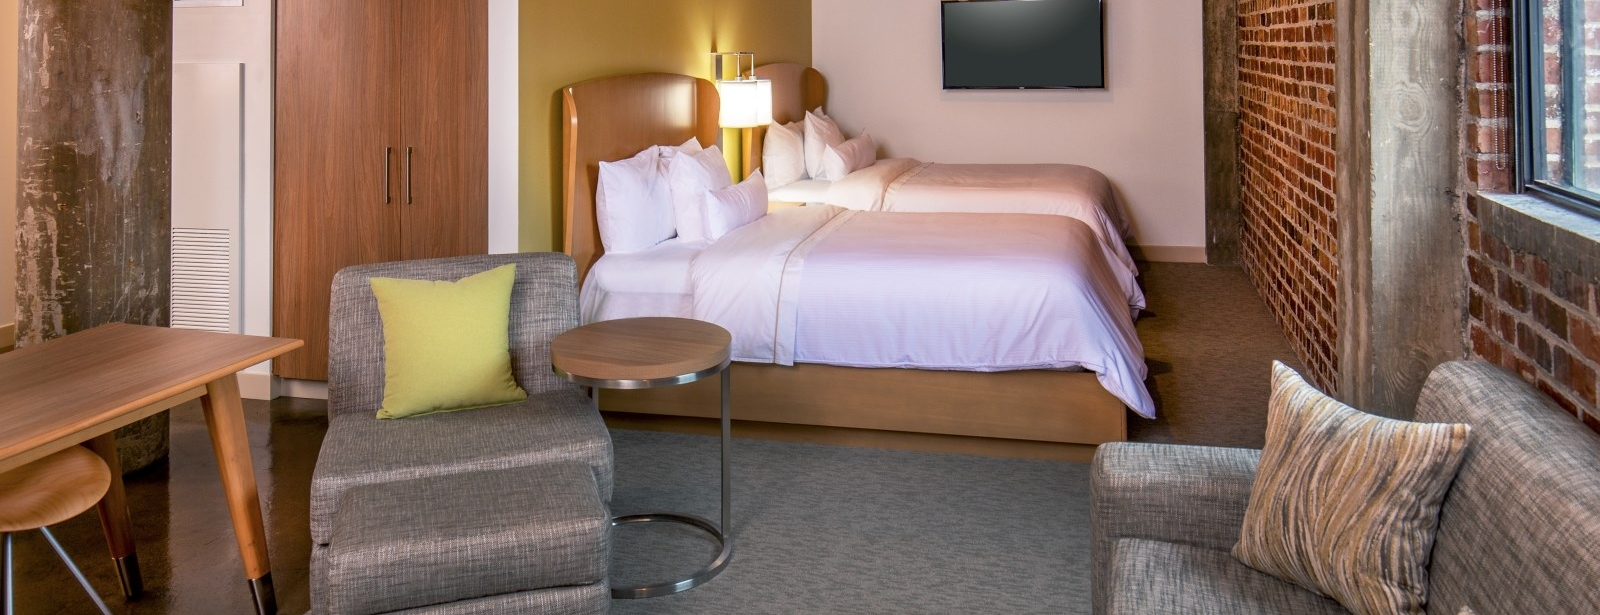 Moline Accommodations - Accessible Room